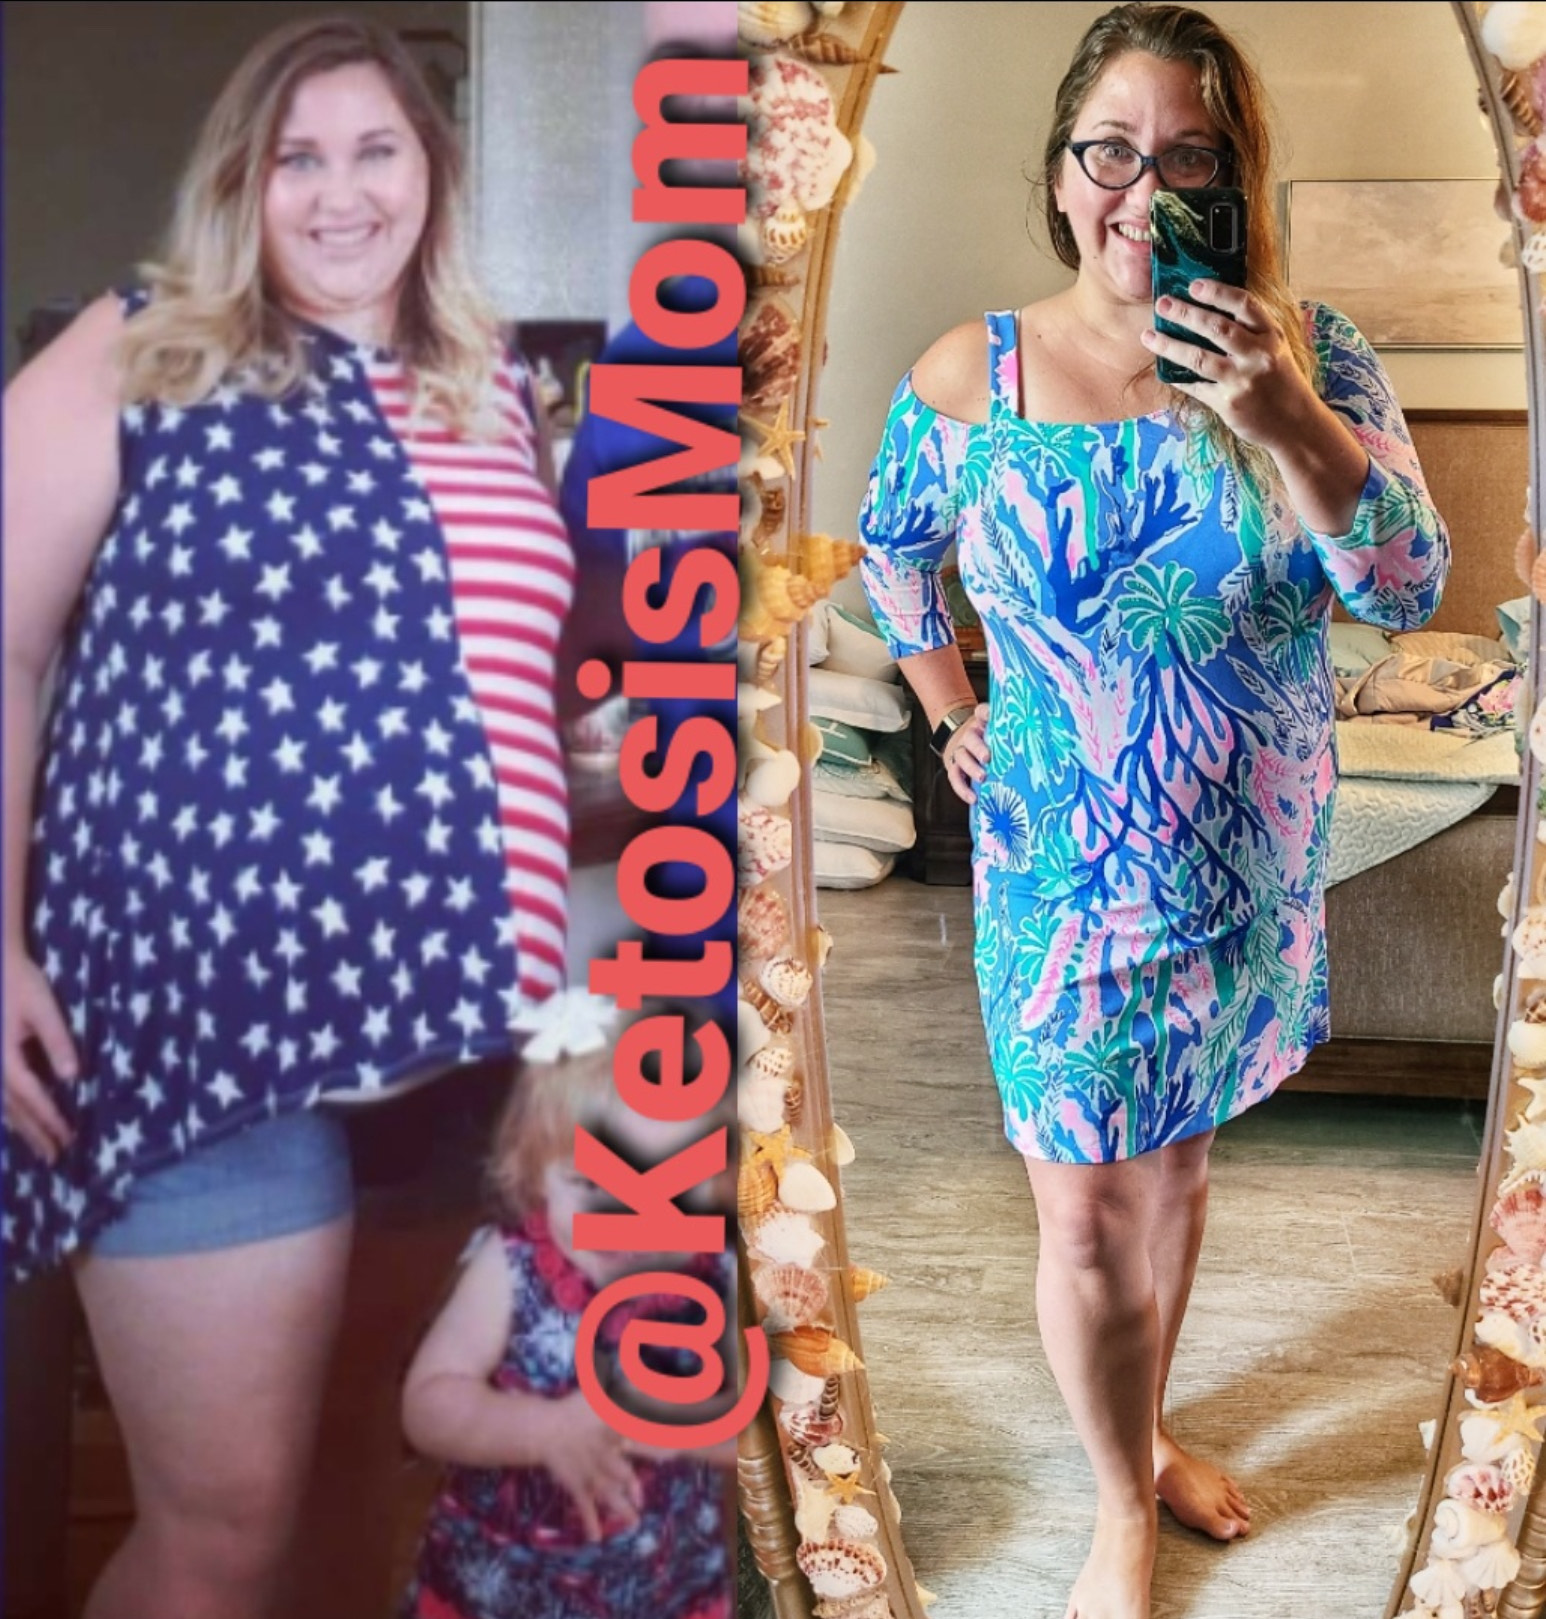 The Ketosis Mom Offers Health and Wellness Advice for a Busy World